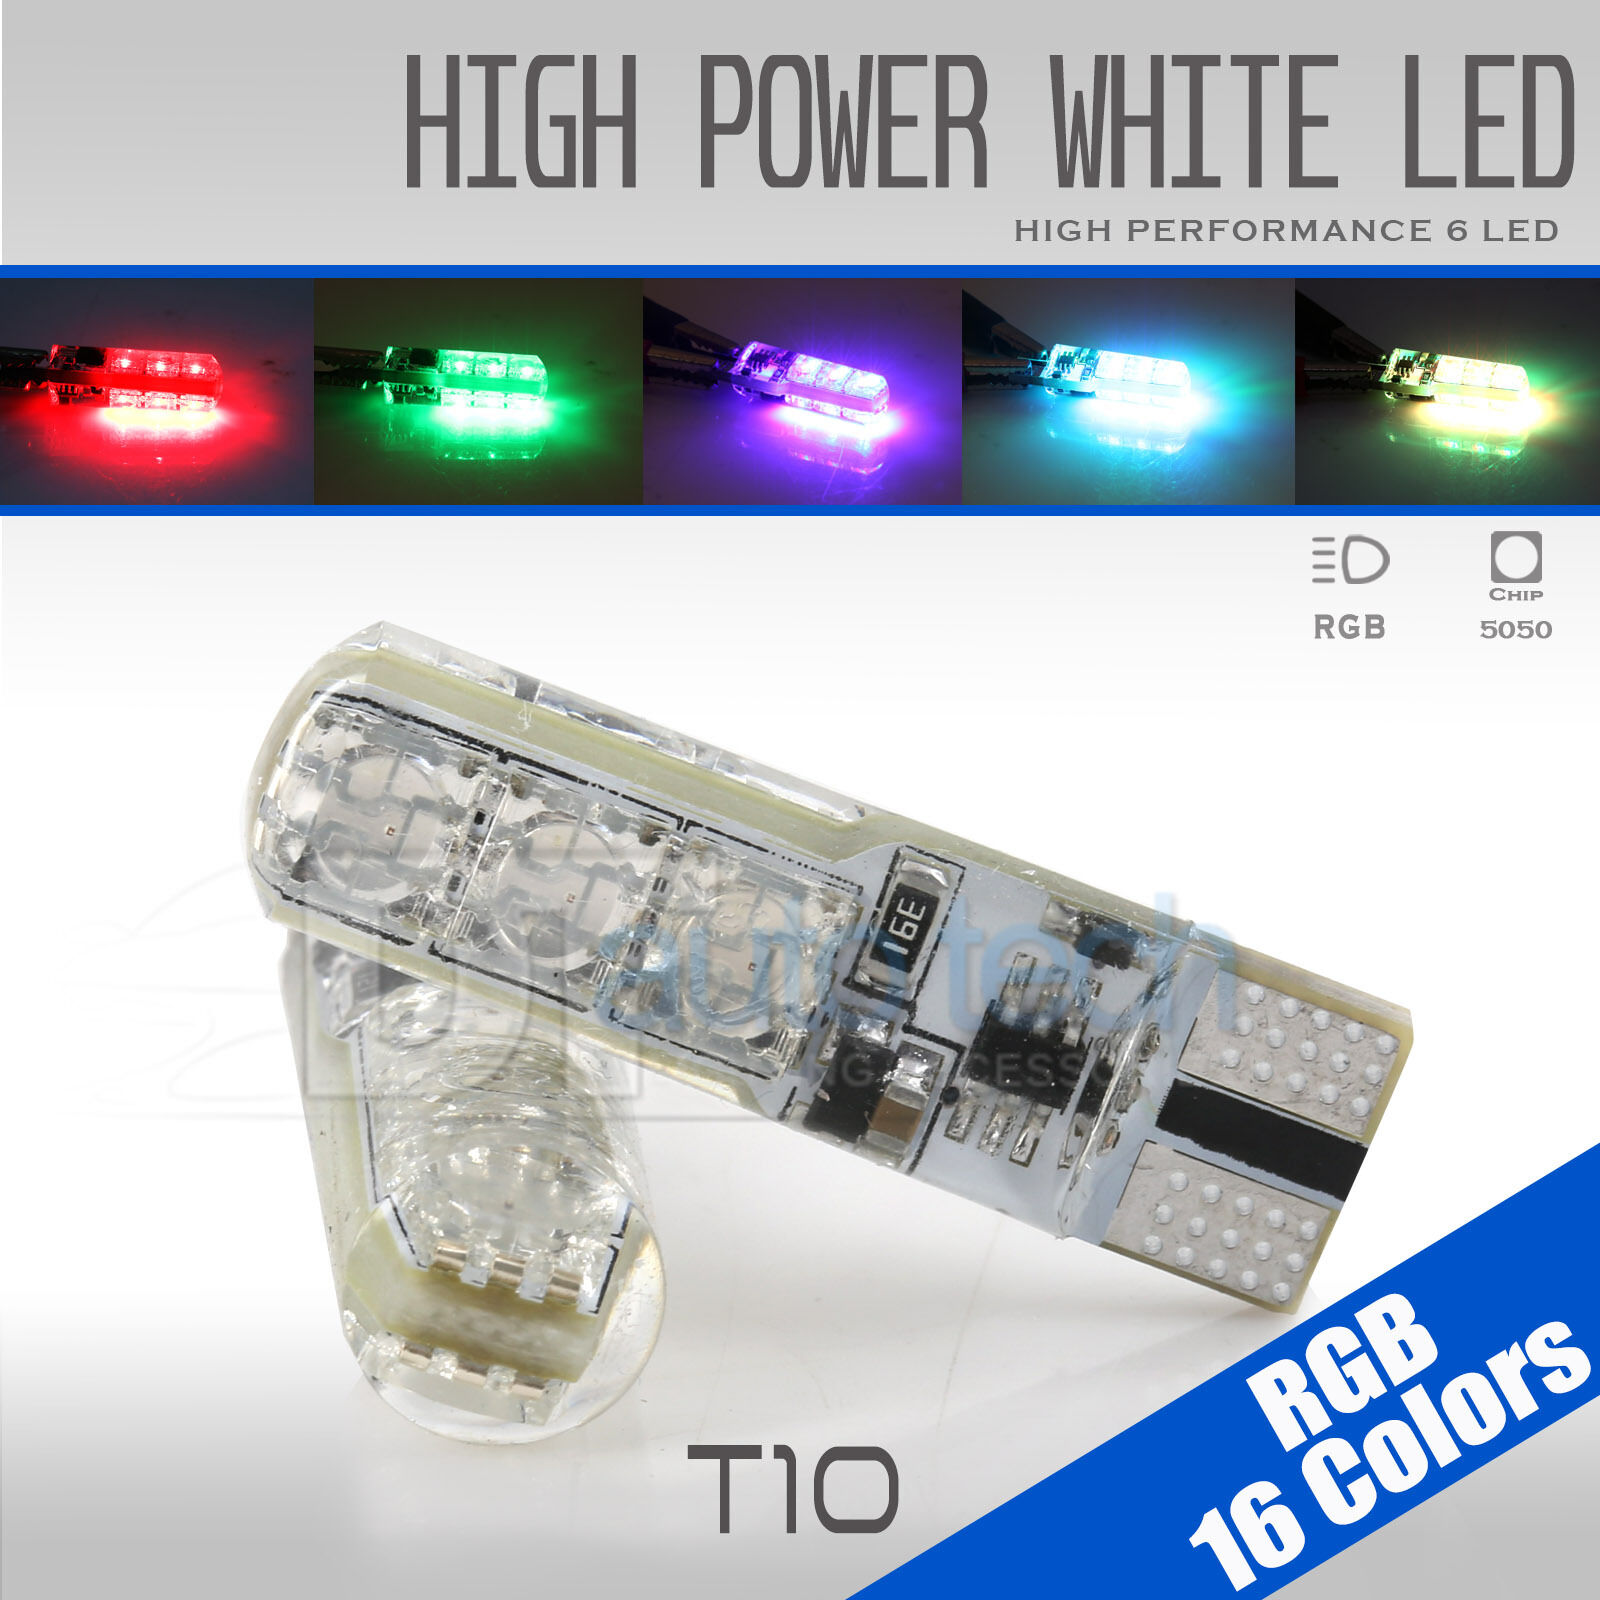 2x T10 921 High Power Rgb Led Multi Color Parking Interior Light To The Dome And Comes On Bulbs Remote